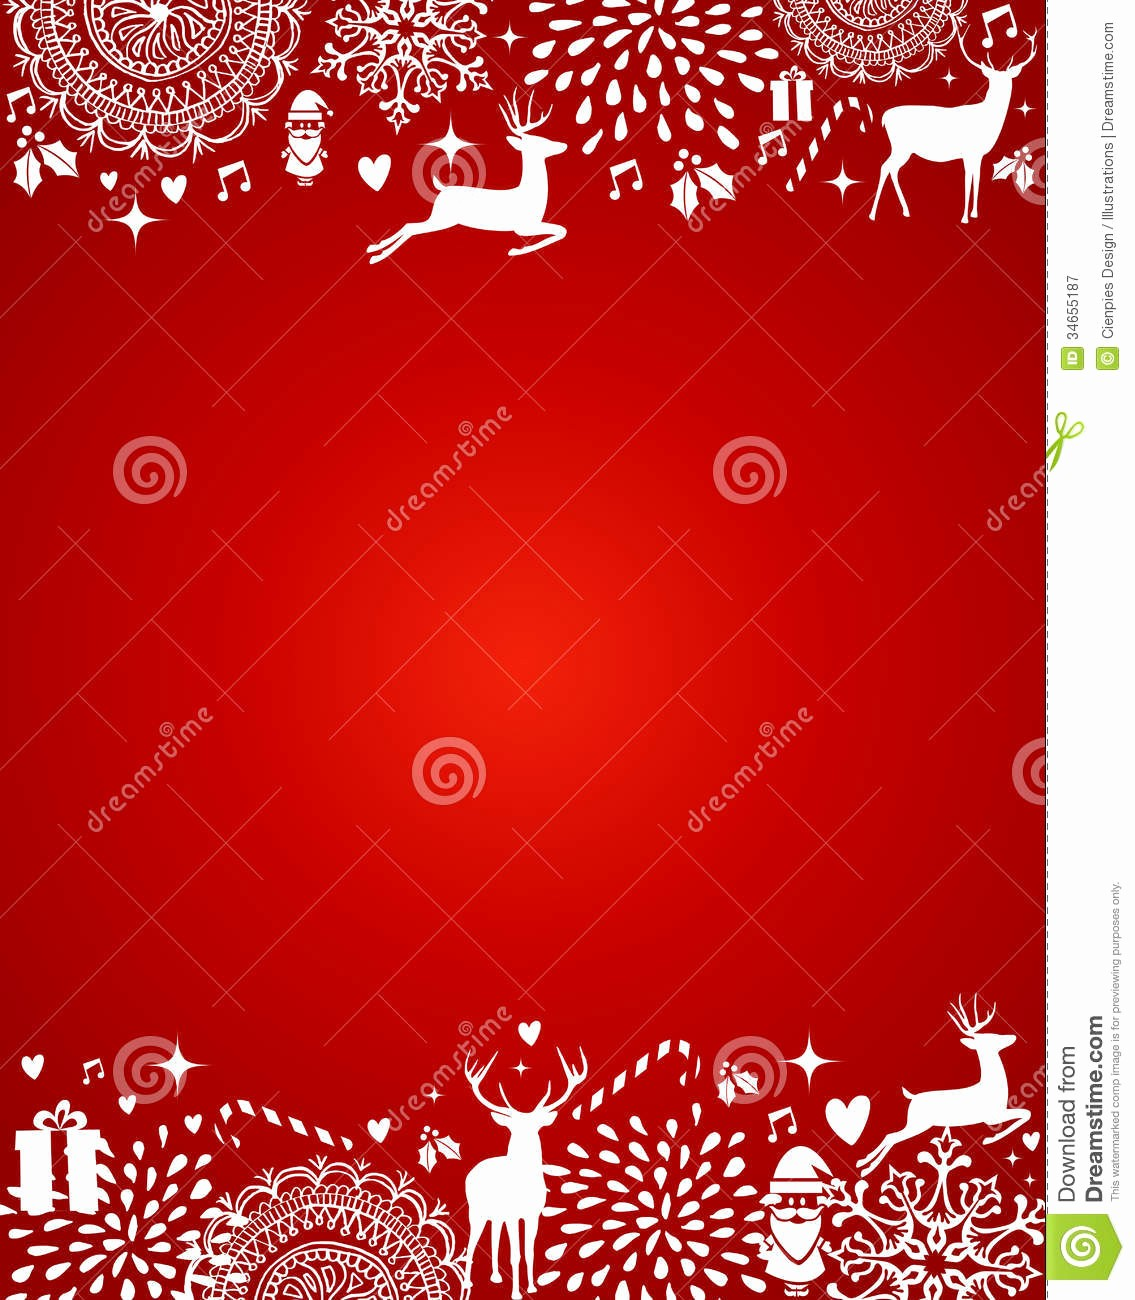 Christmas Certificate Template Free Download Inspirational 10 Christmas Templates Free Download Free